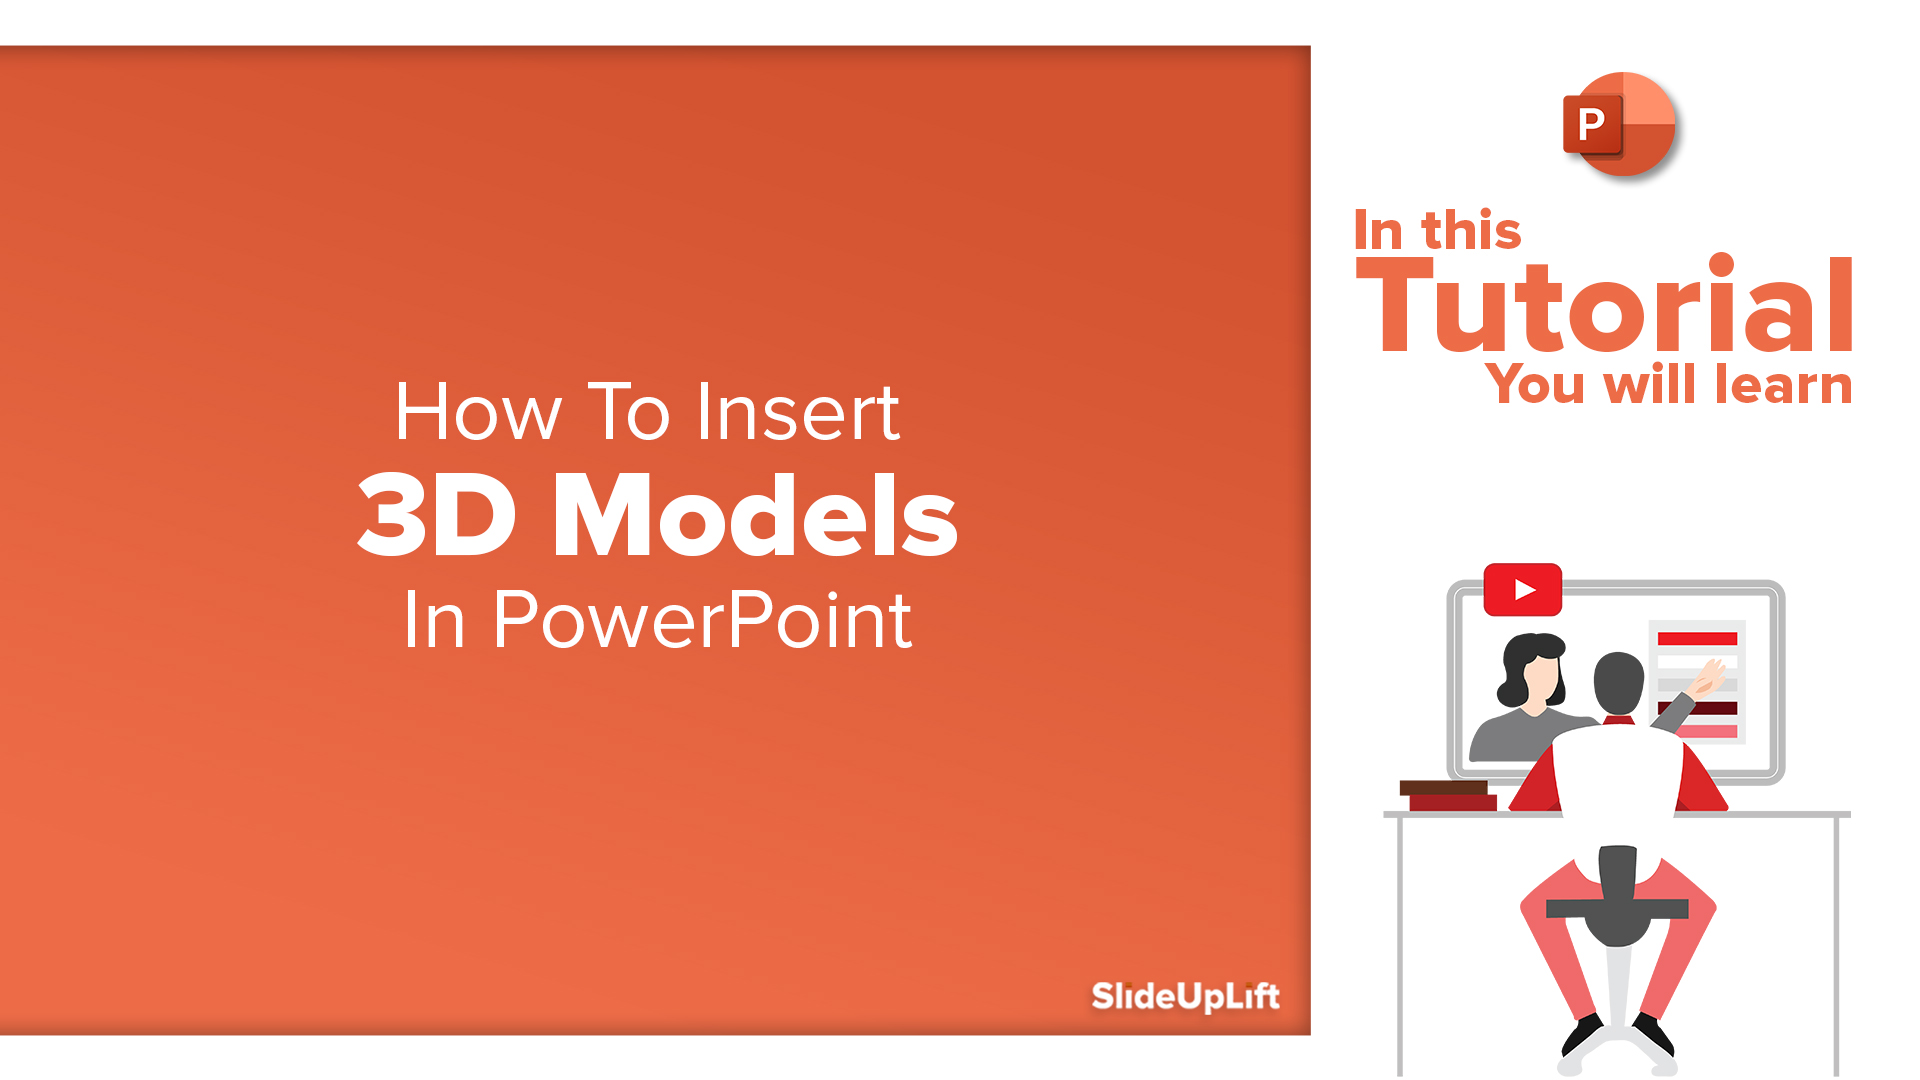 How to insert 3D models in PowerPoint